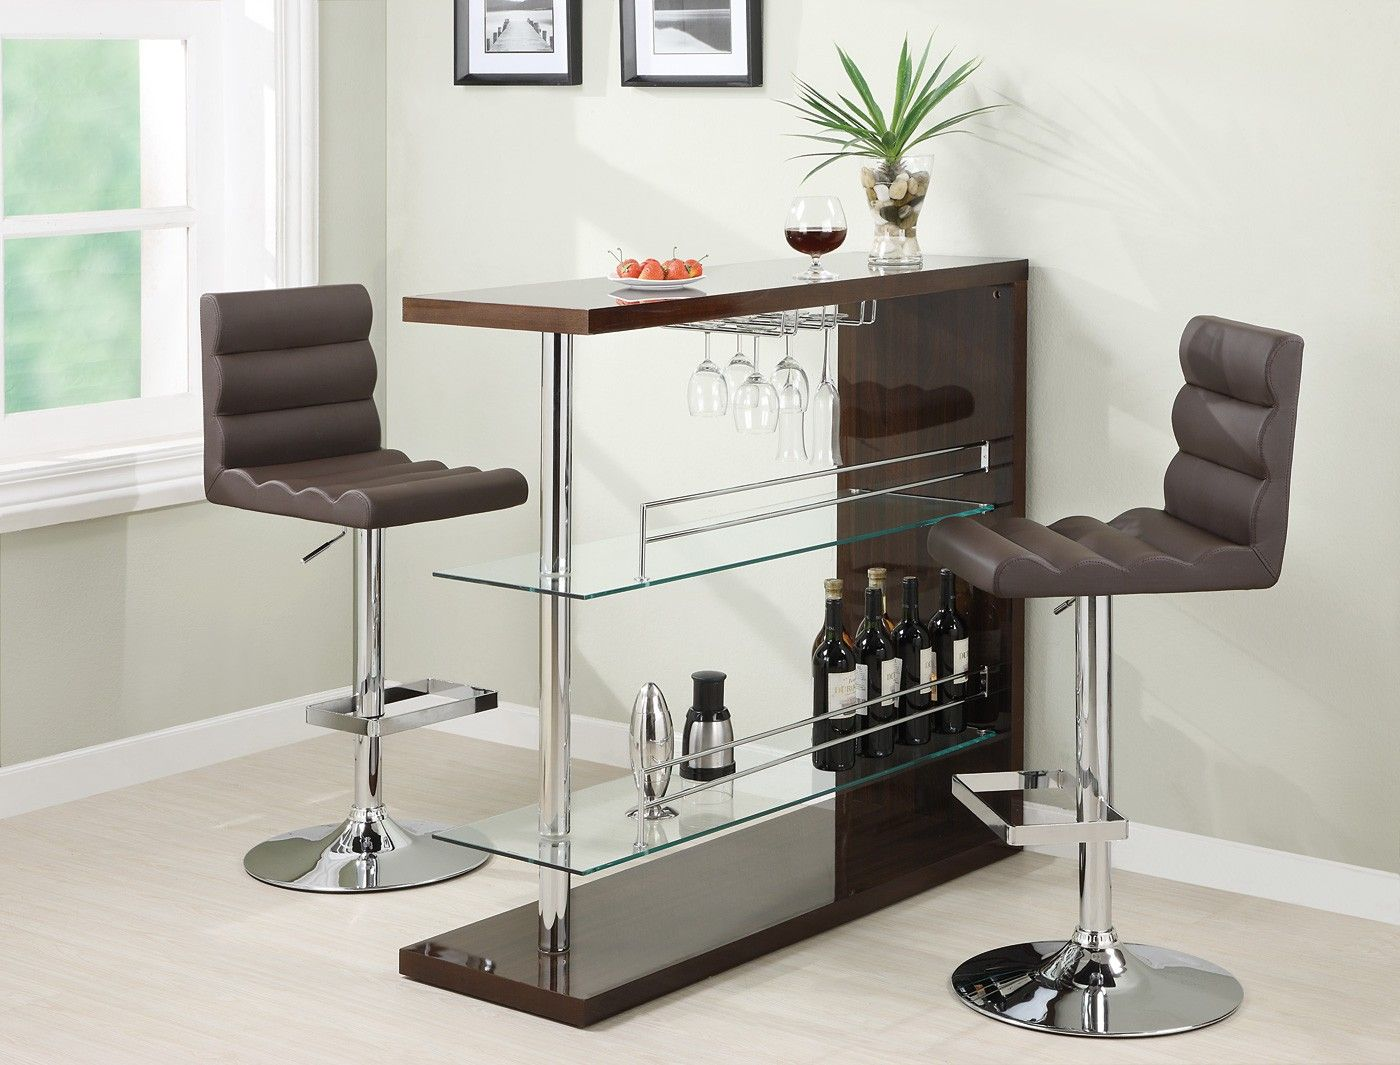 bar table home - Buscar con Google